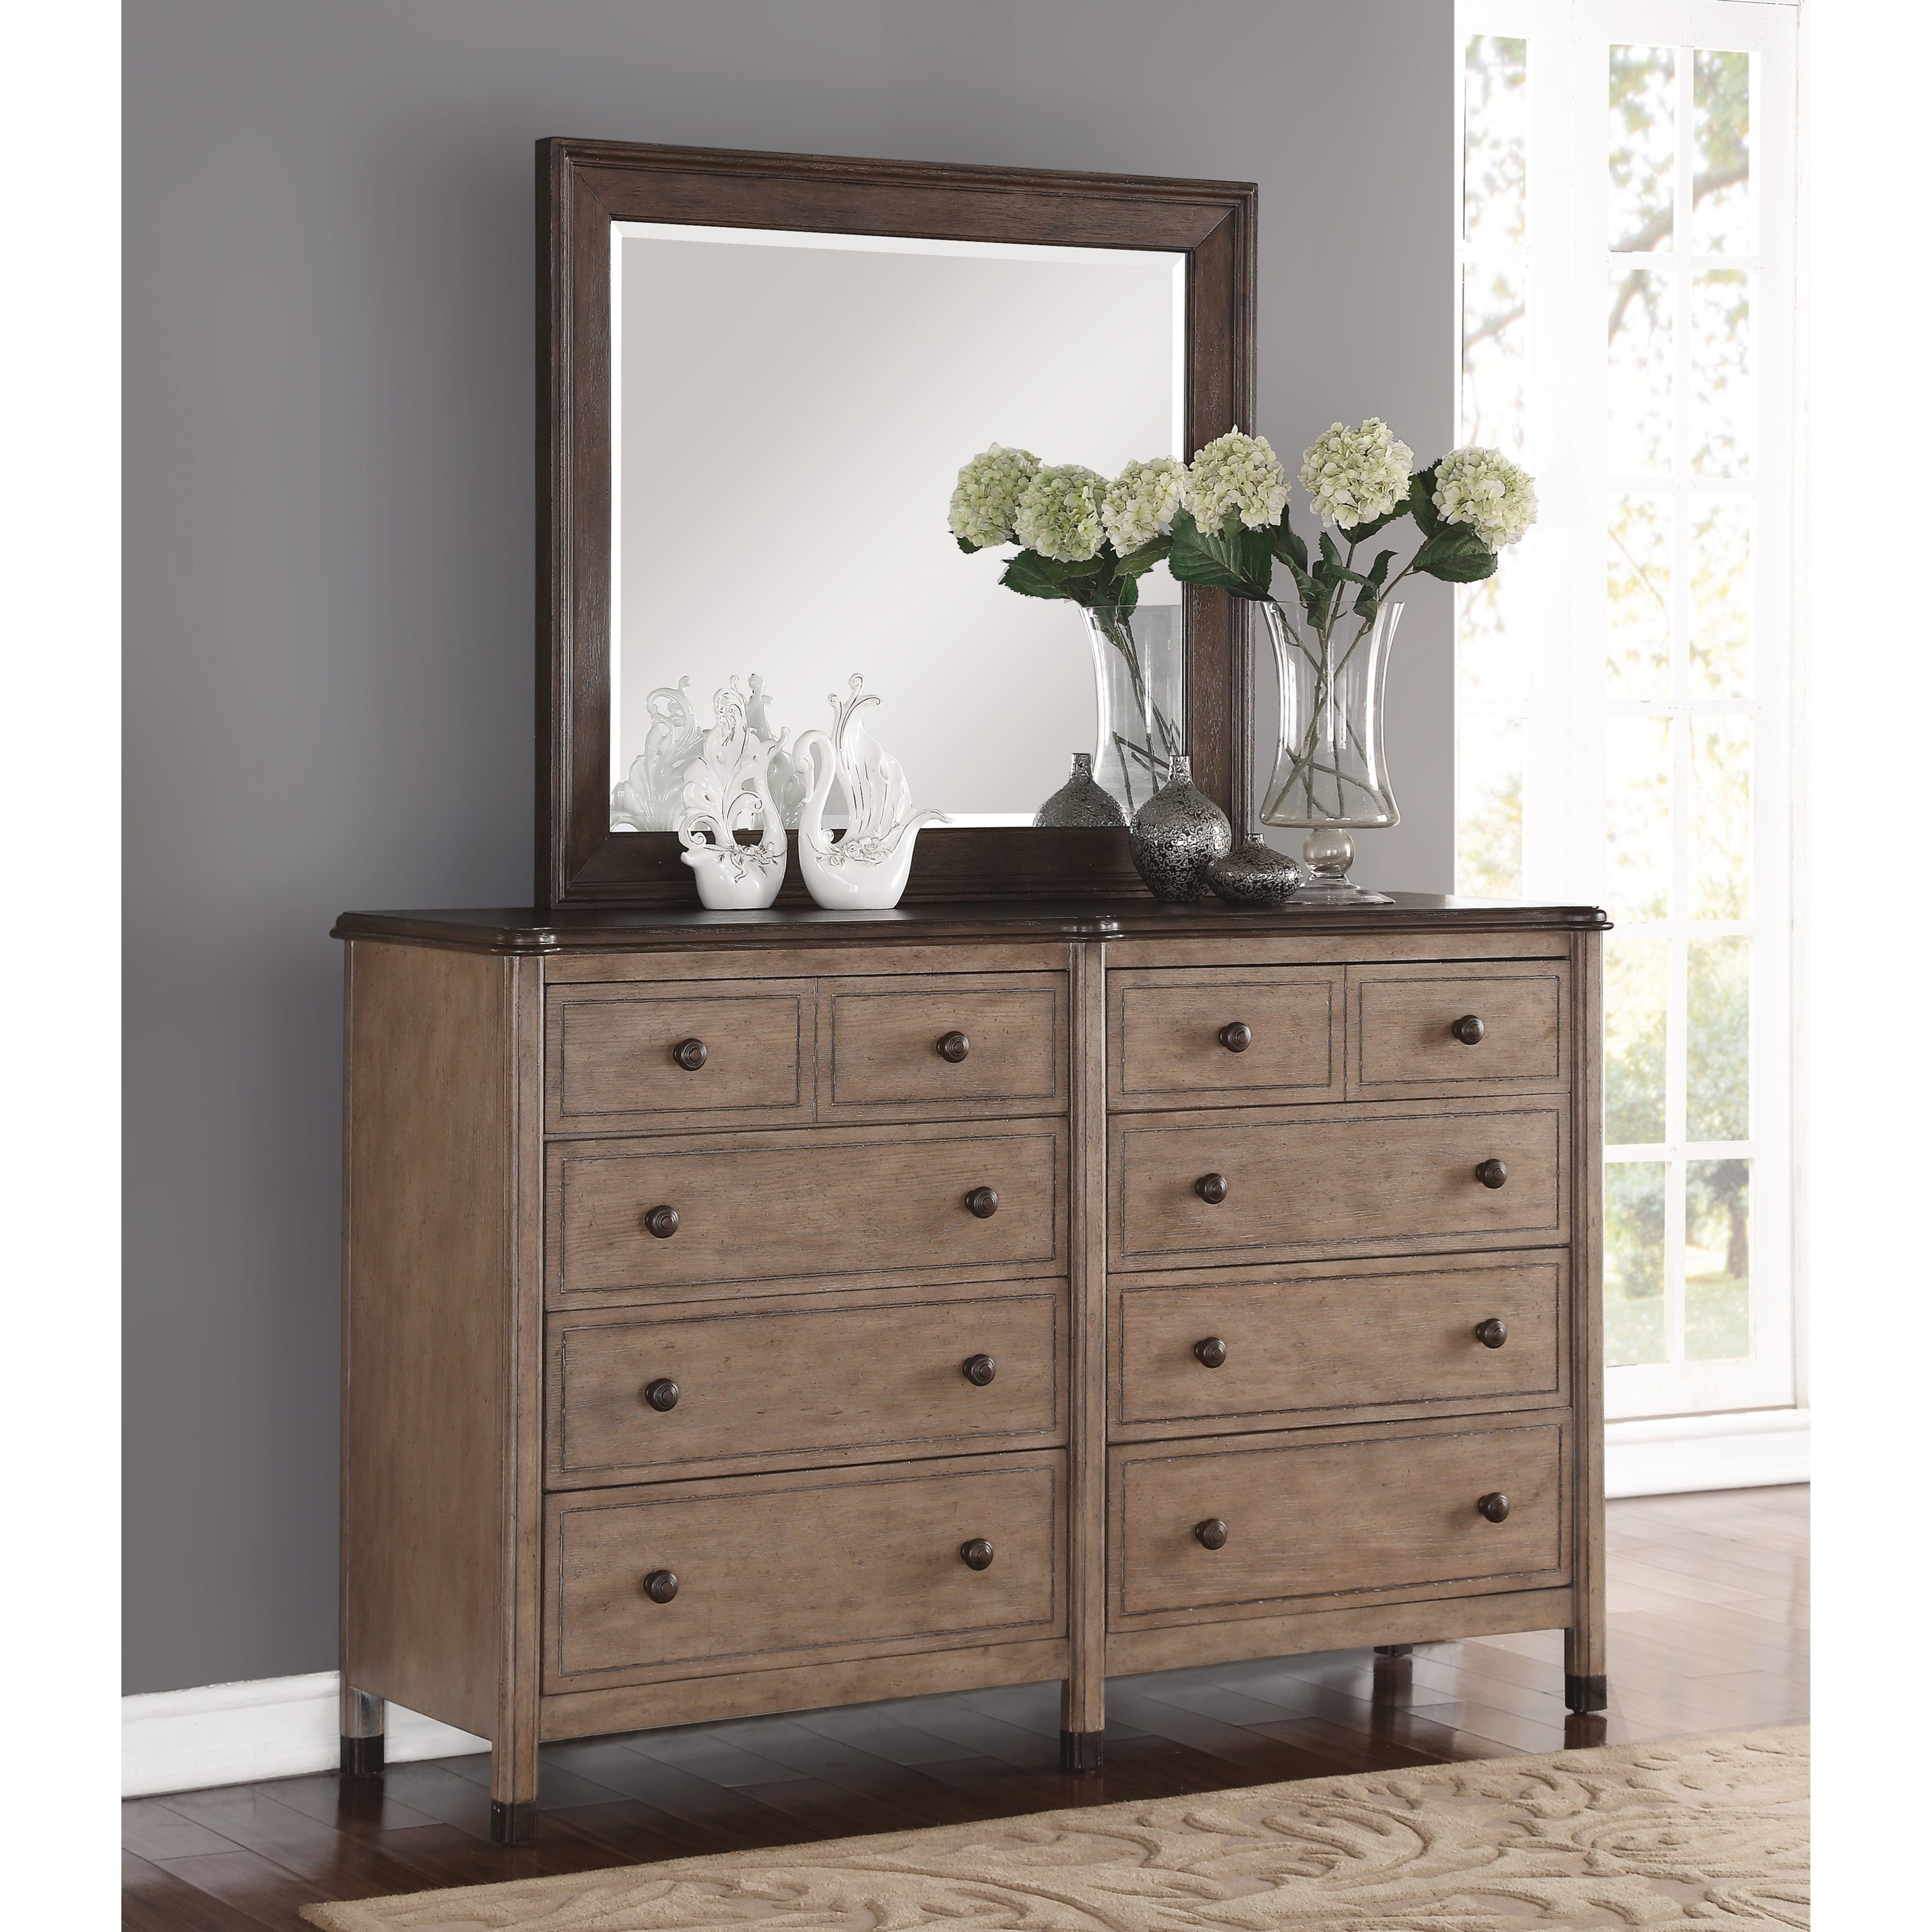 Flexsteel Wynwood Collection Carmen Transitional Two Tone Dresser And Mirror With False Bottom